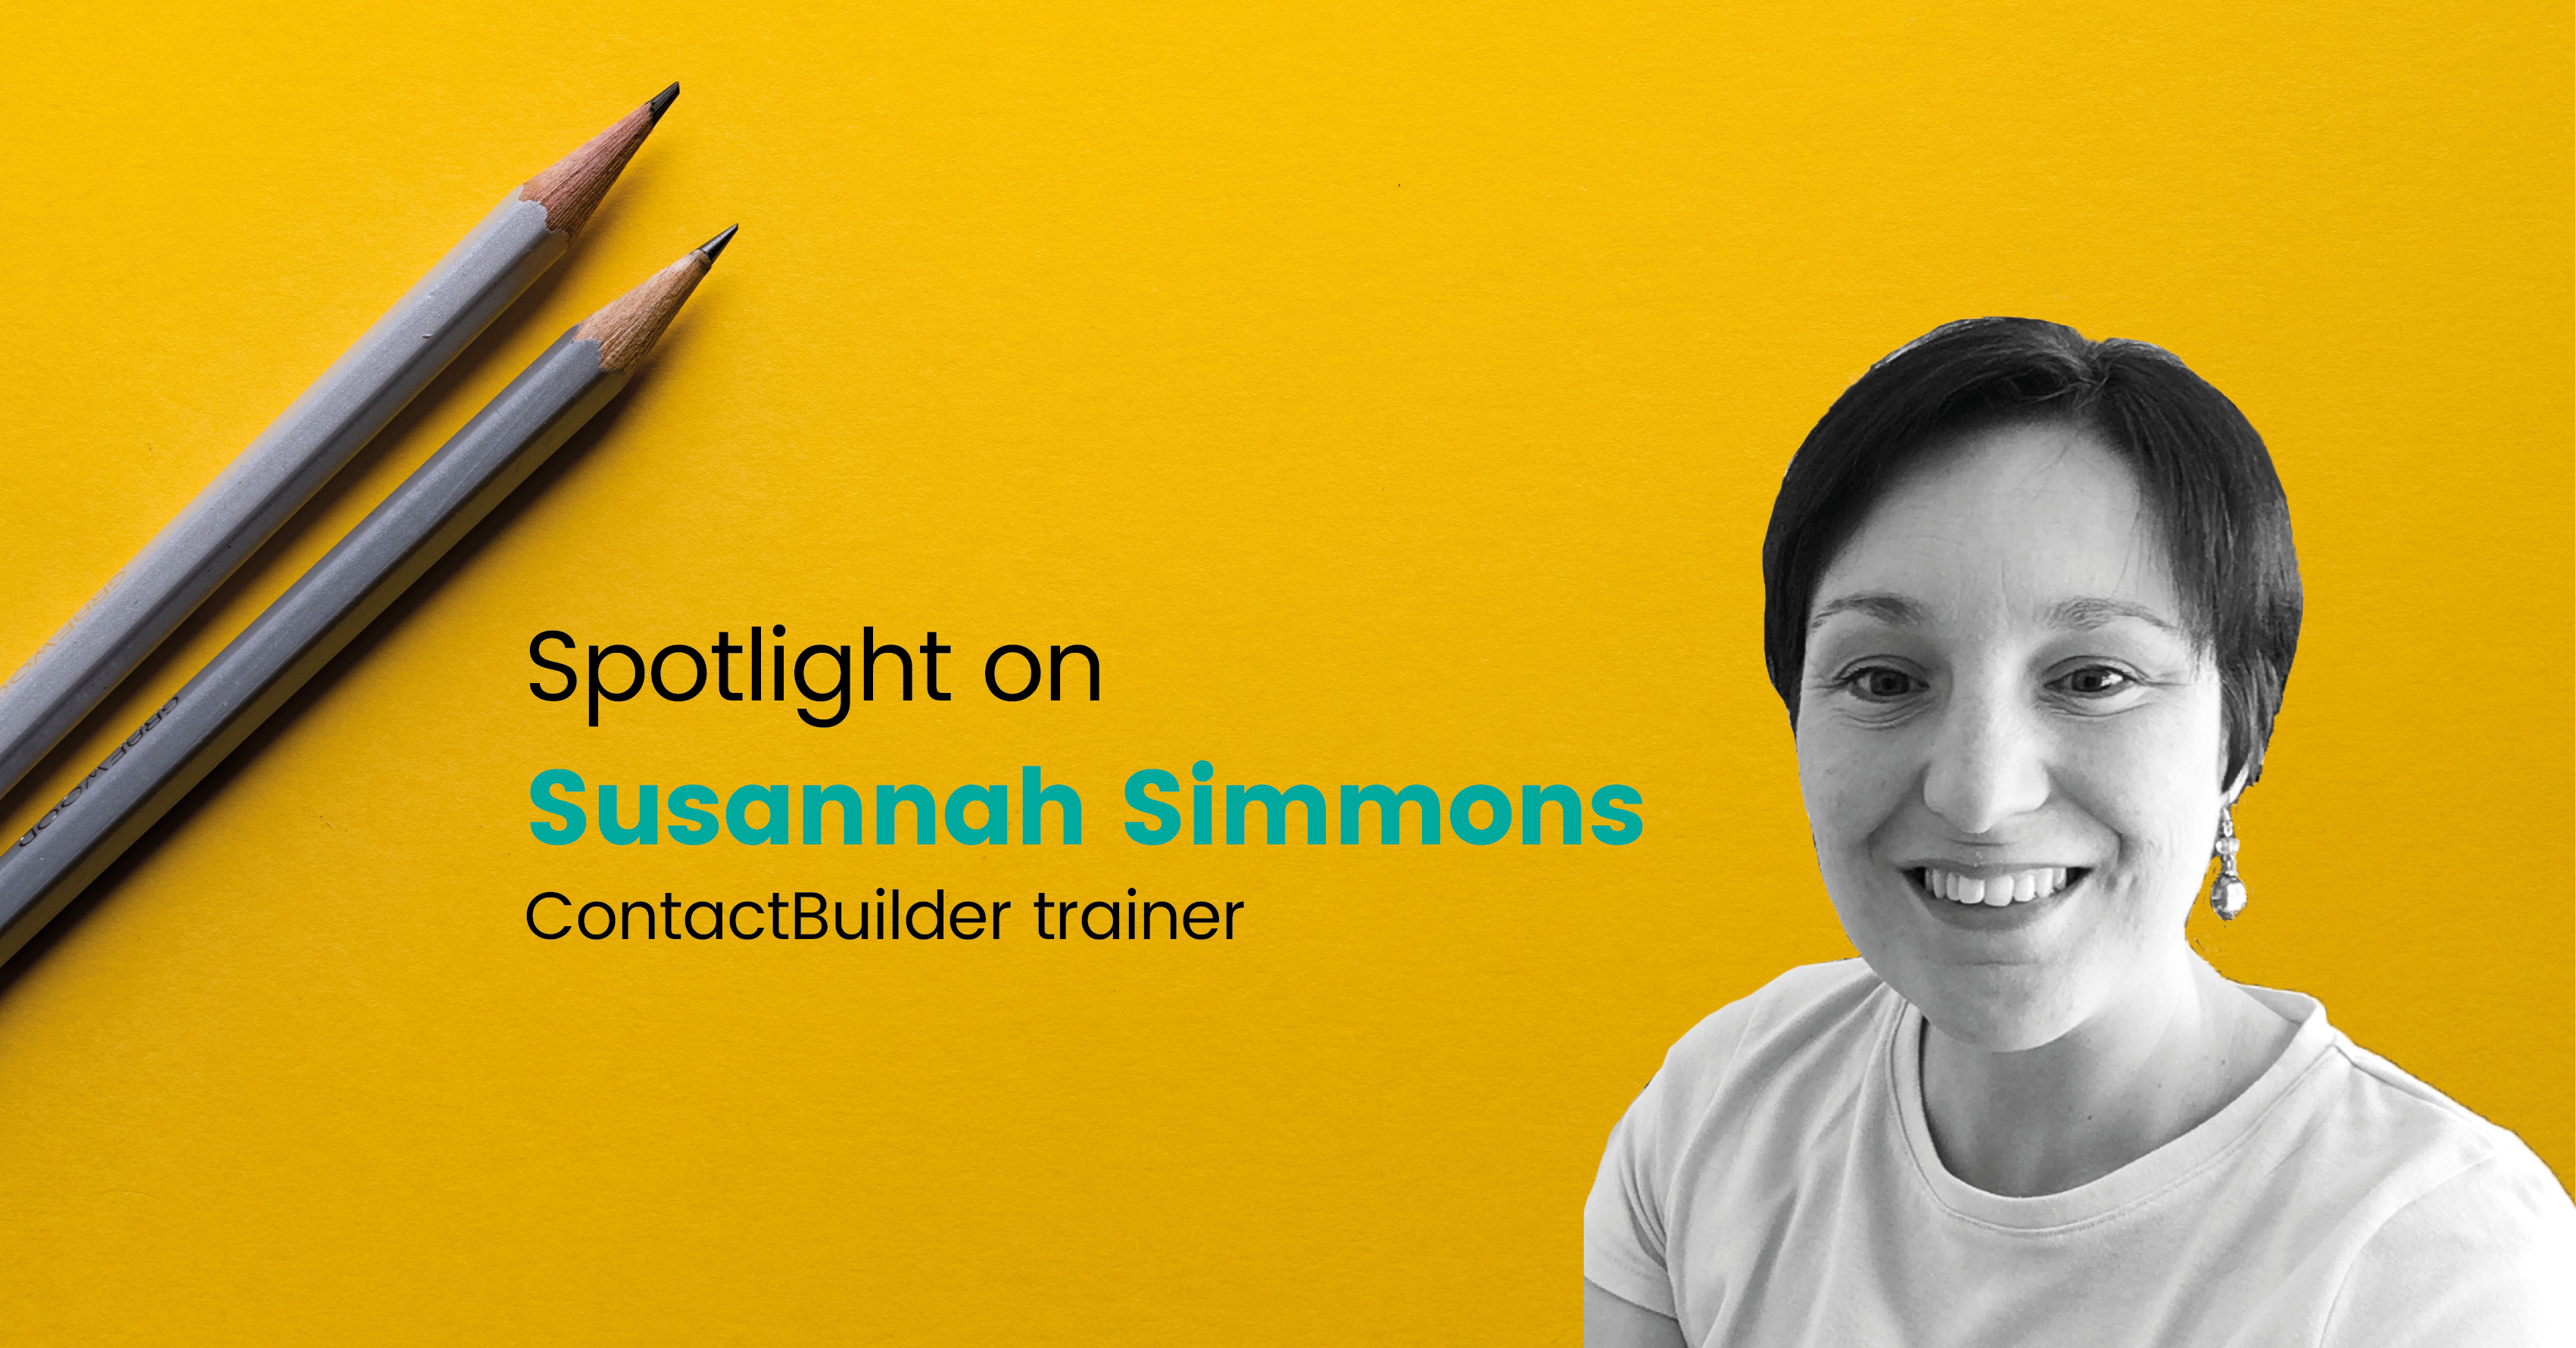 Spotlight on Susannah Simmons